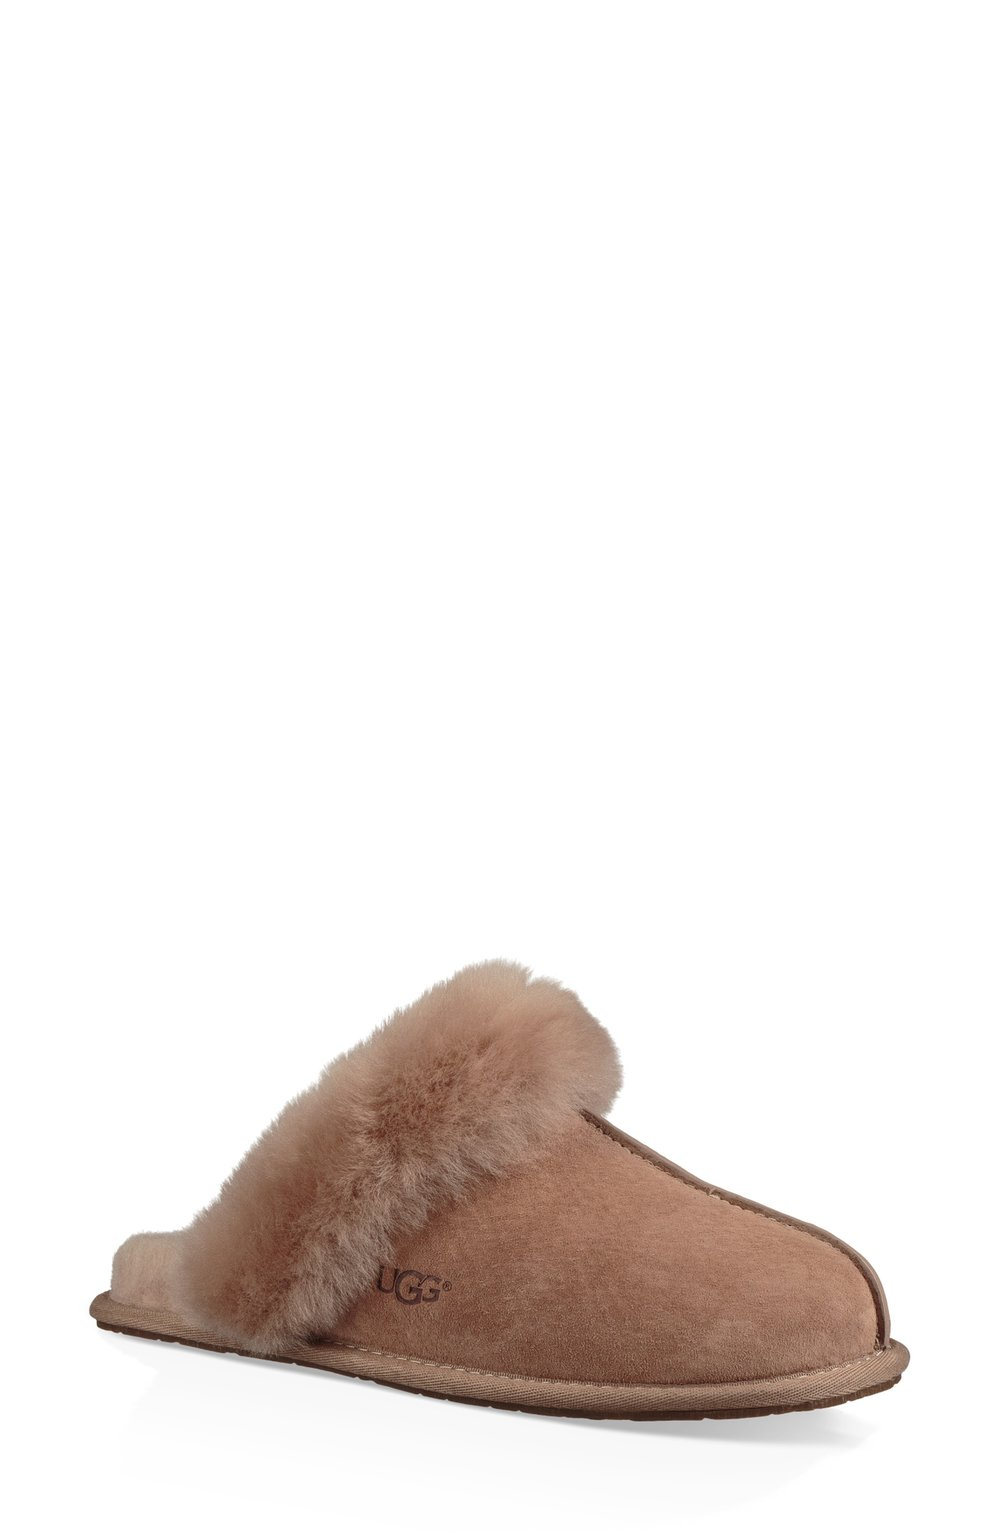 Copy of ugg slippers